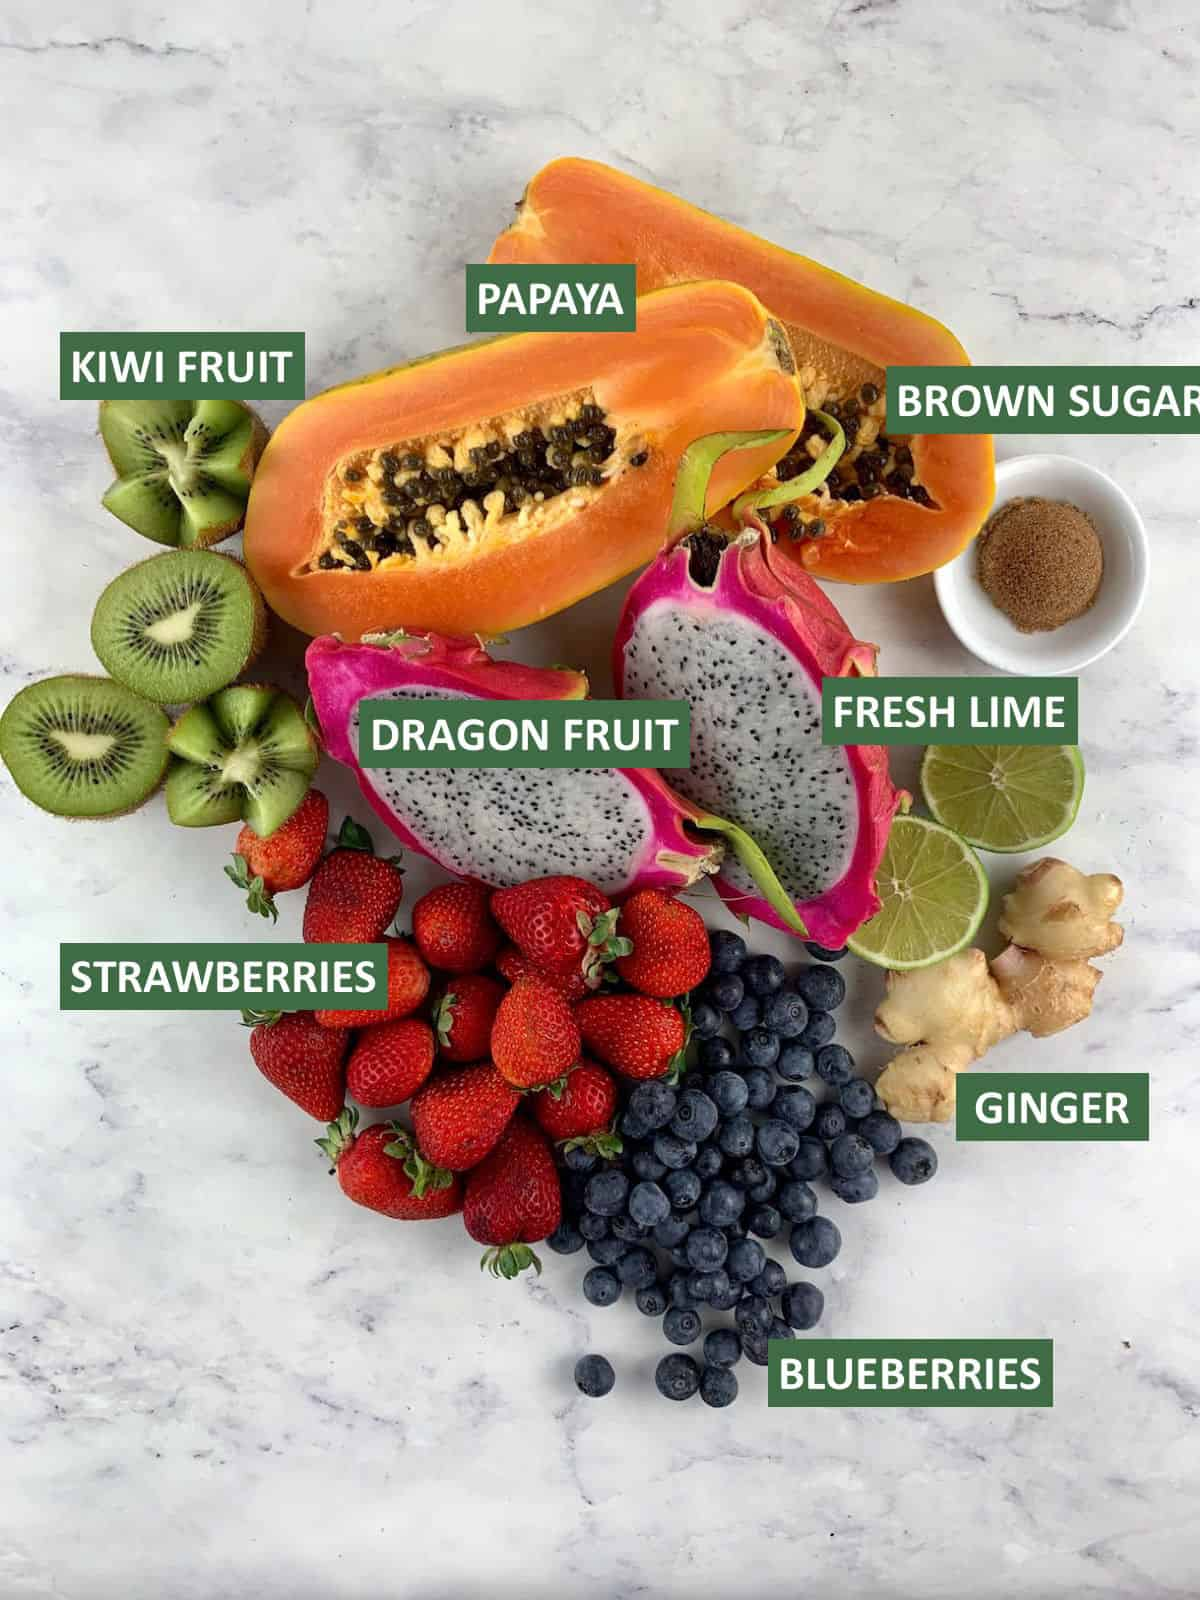 LABELLED INGREDIENTS NEEDED FOR DRAGON FRUIT SALAD